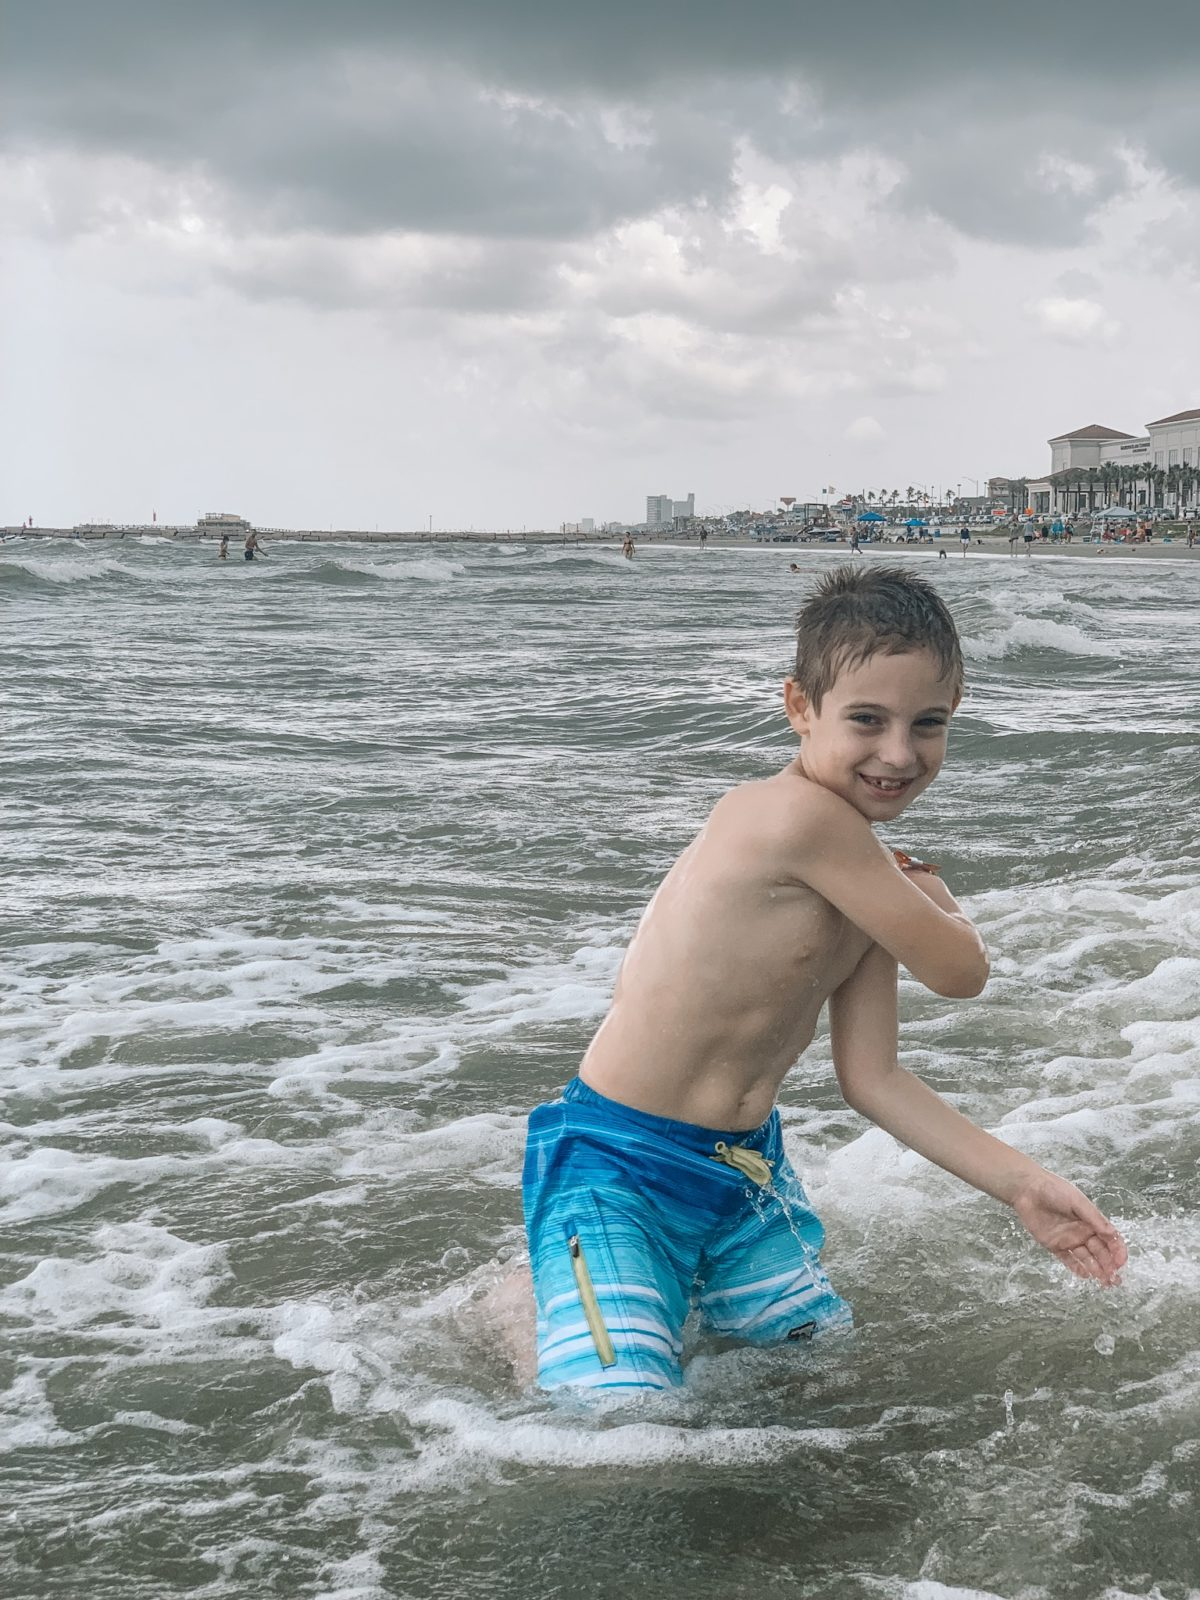 48 Hours in Galveston - playing in the ocean